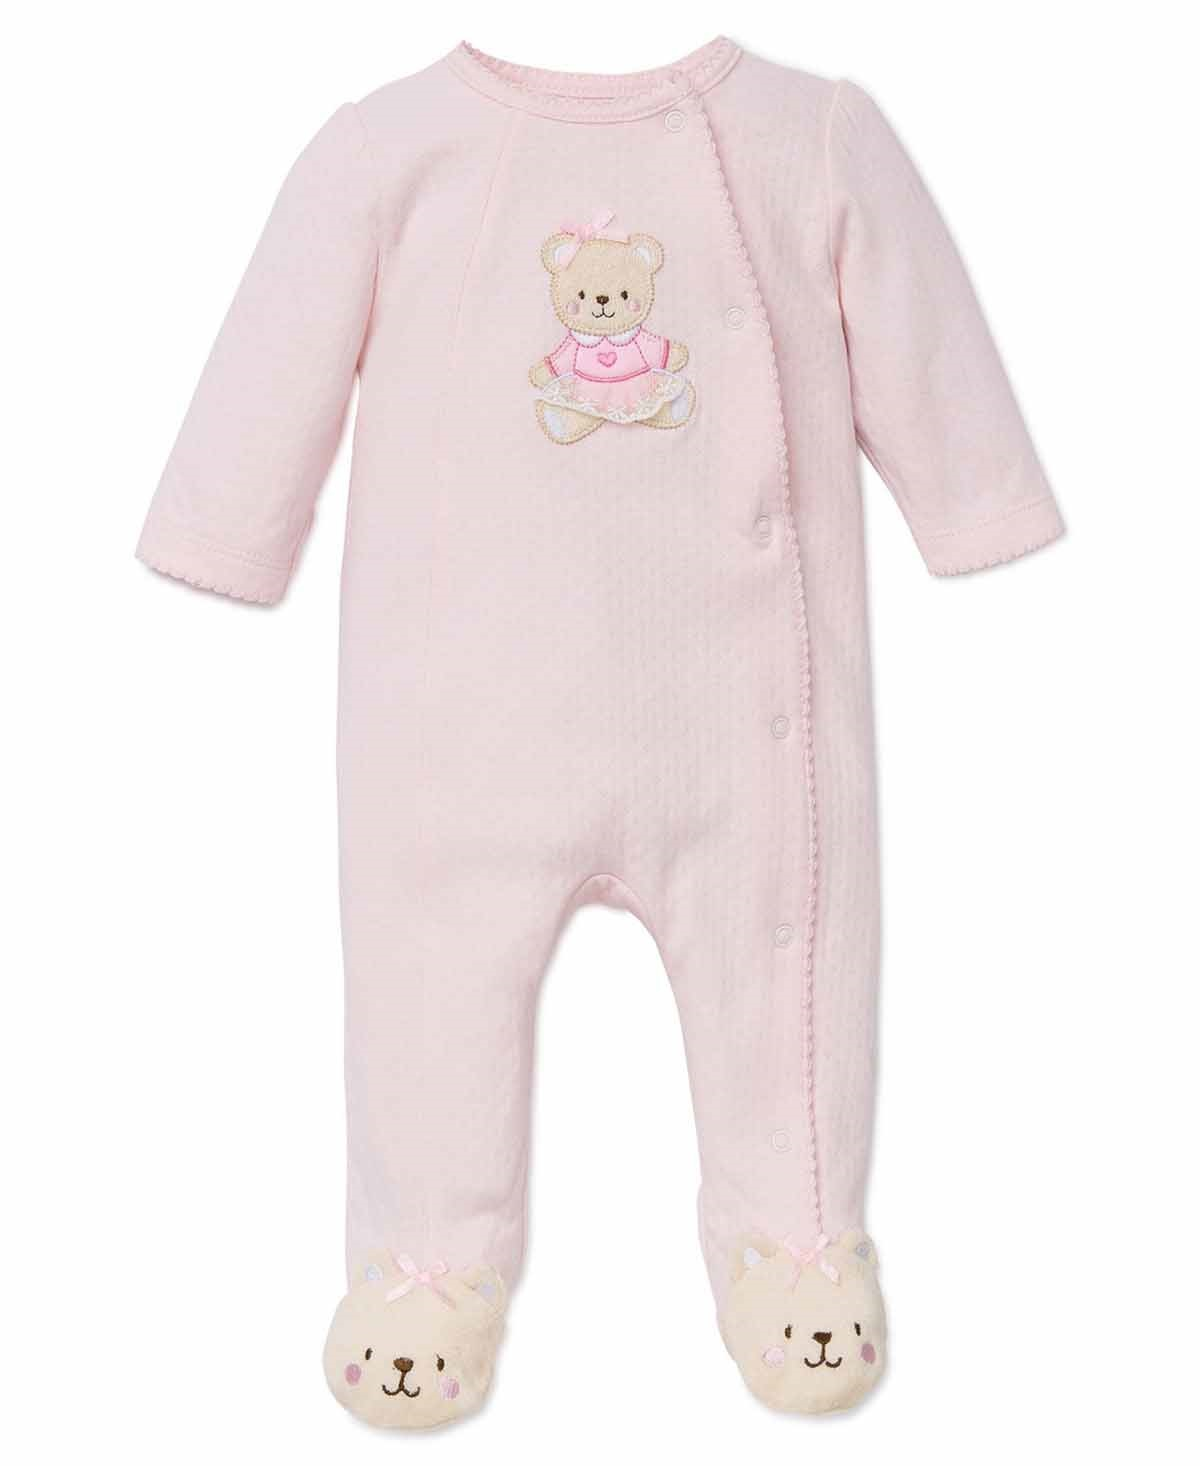 LITTLE ME Baby or Toddler Girls 1-Piece Snug Fitting Sleeper Pajama (Light Pink, 6 Month)